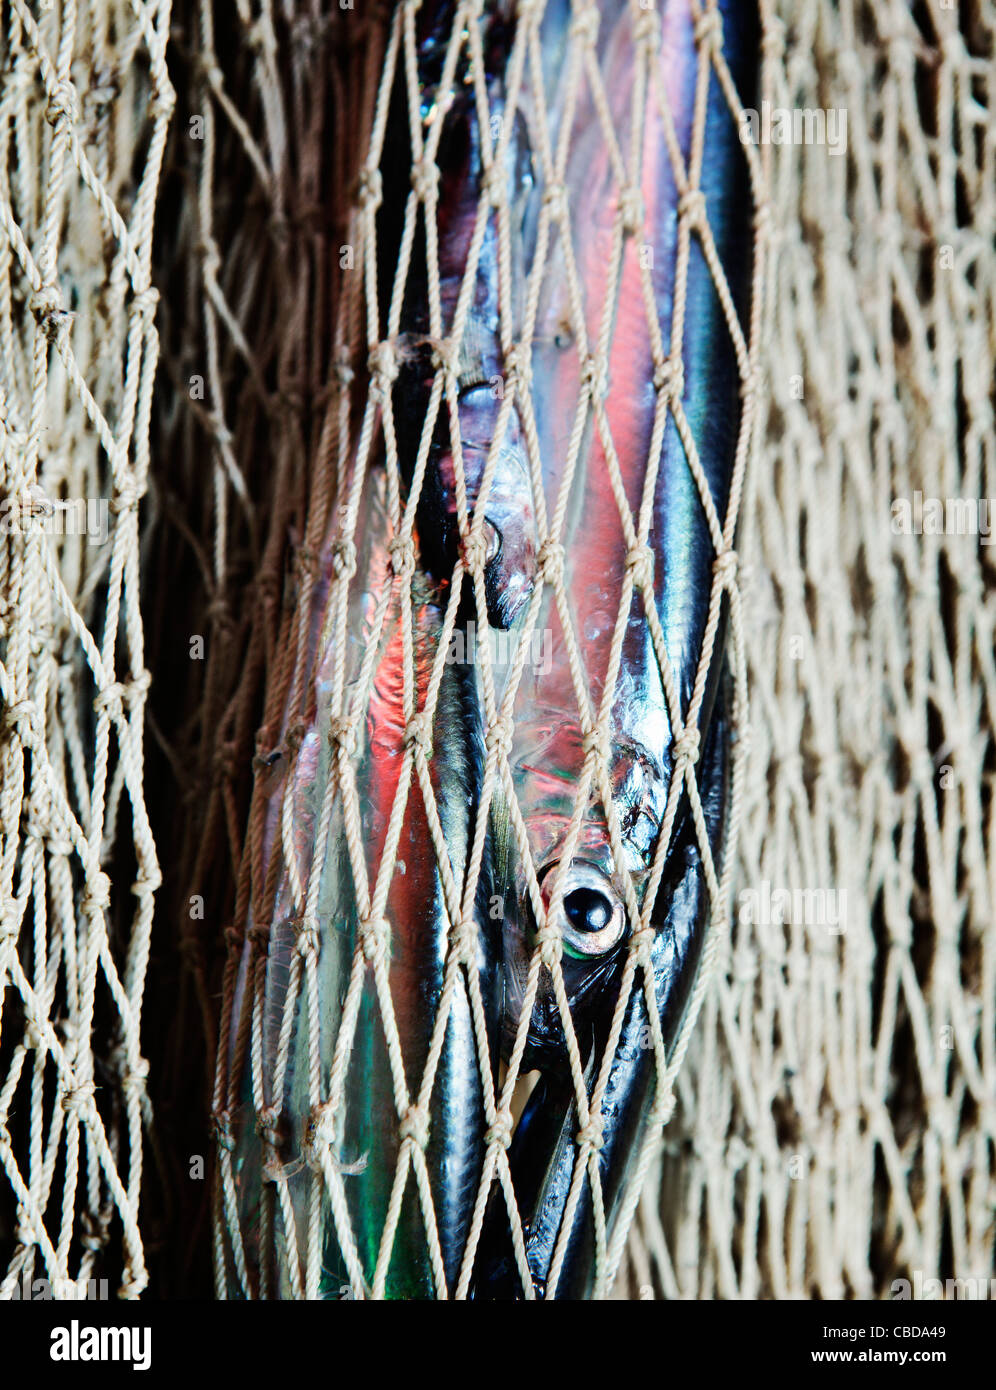 Herrings stuck in a trawling net in Baltic Sea (between Finland / Sweden) - Stock Image